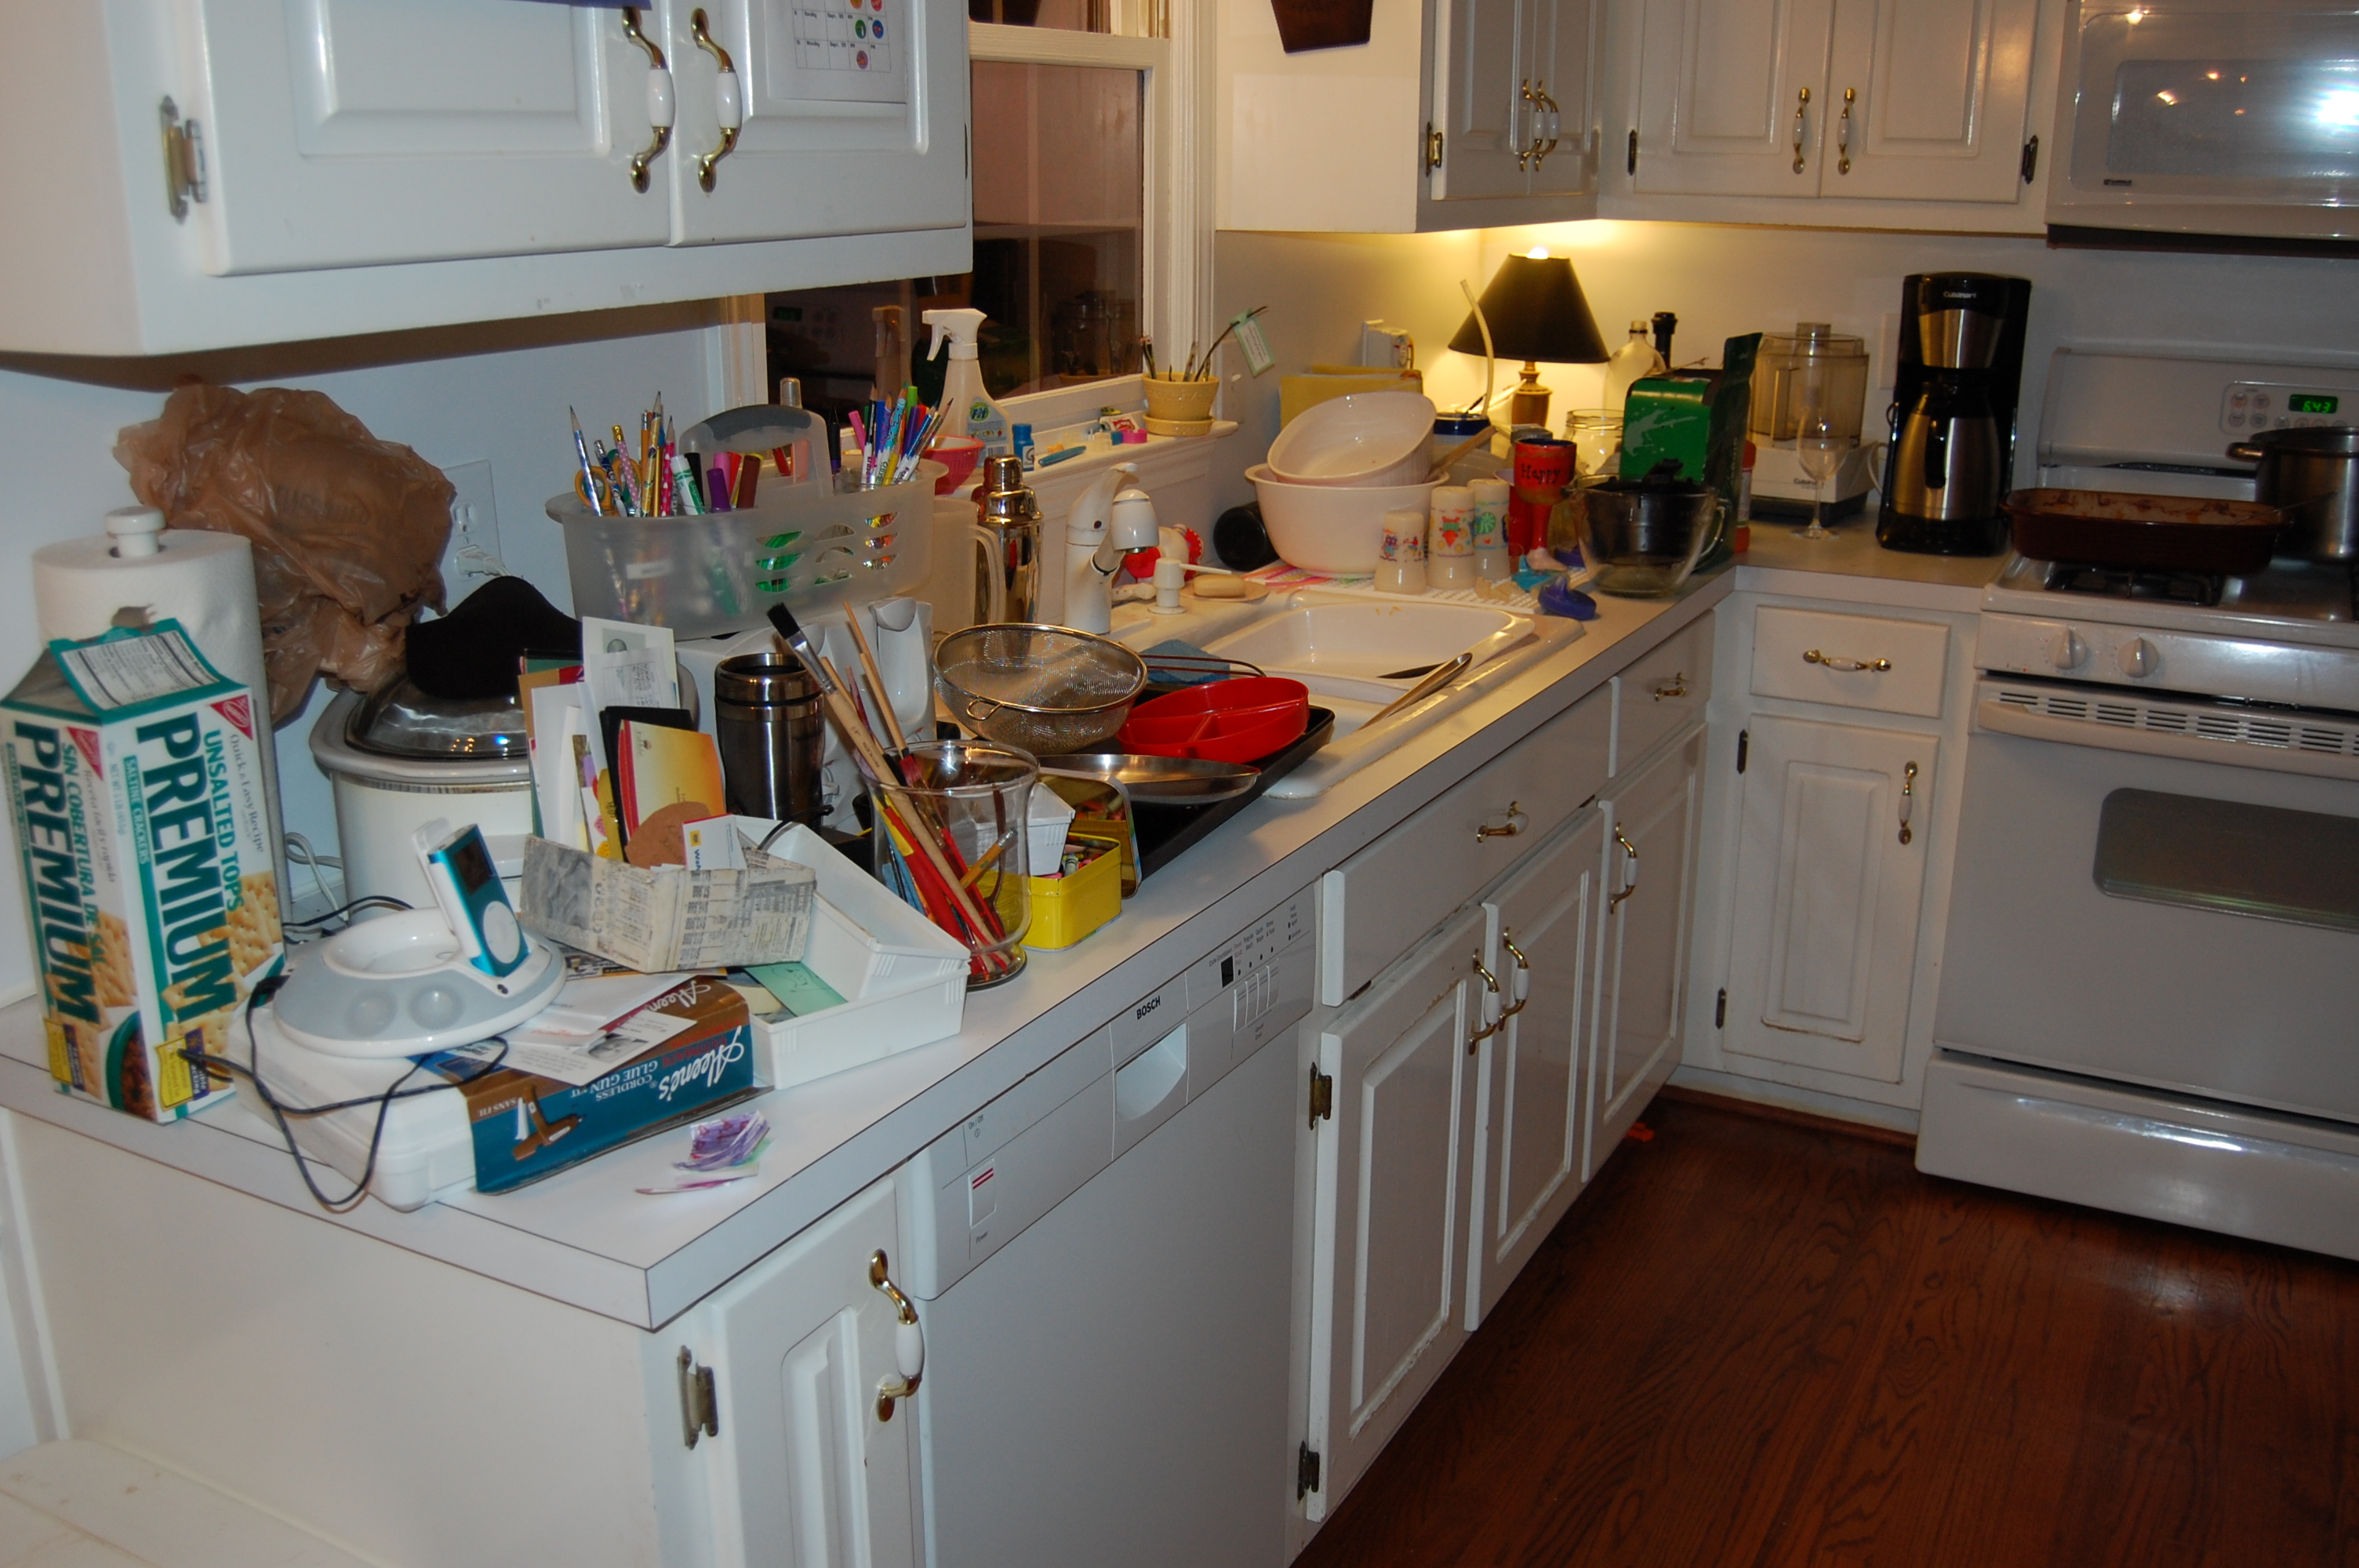 Typical kitchen counter any given day... notice clothes, crafting supplies, dirty dishes, an iPod, food...